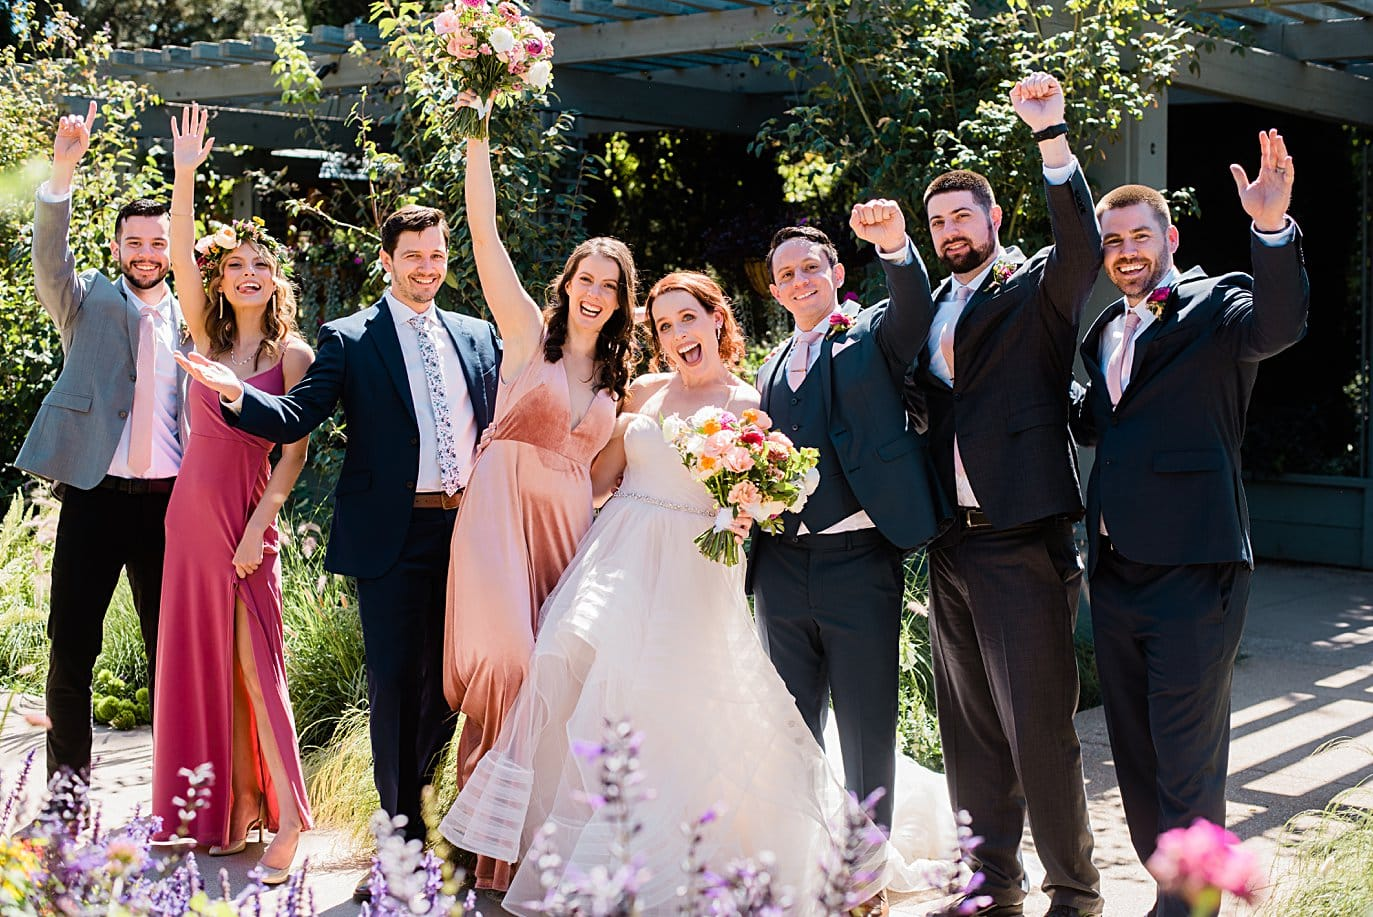 wedding party cheers after ceremony at Denver Botanic Gardens microwedding by Boulder wedding photographer Jennie Crate